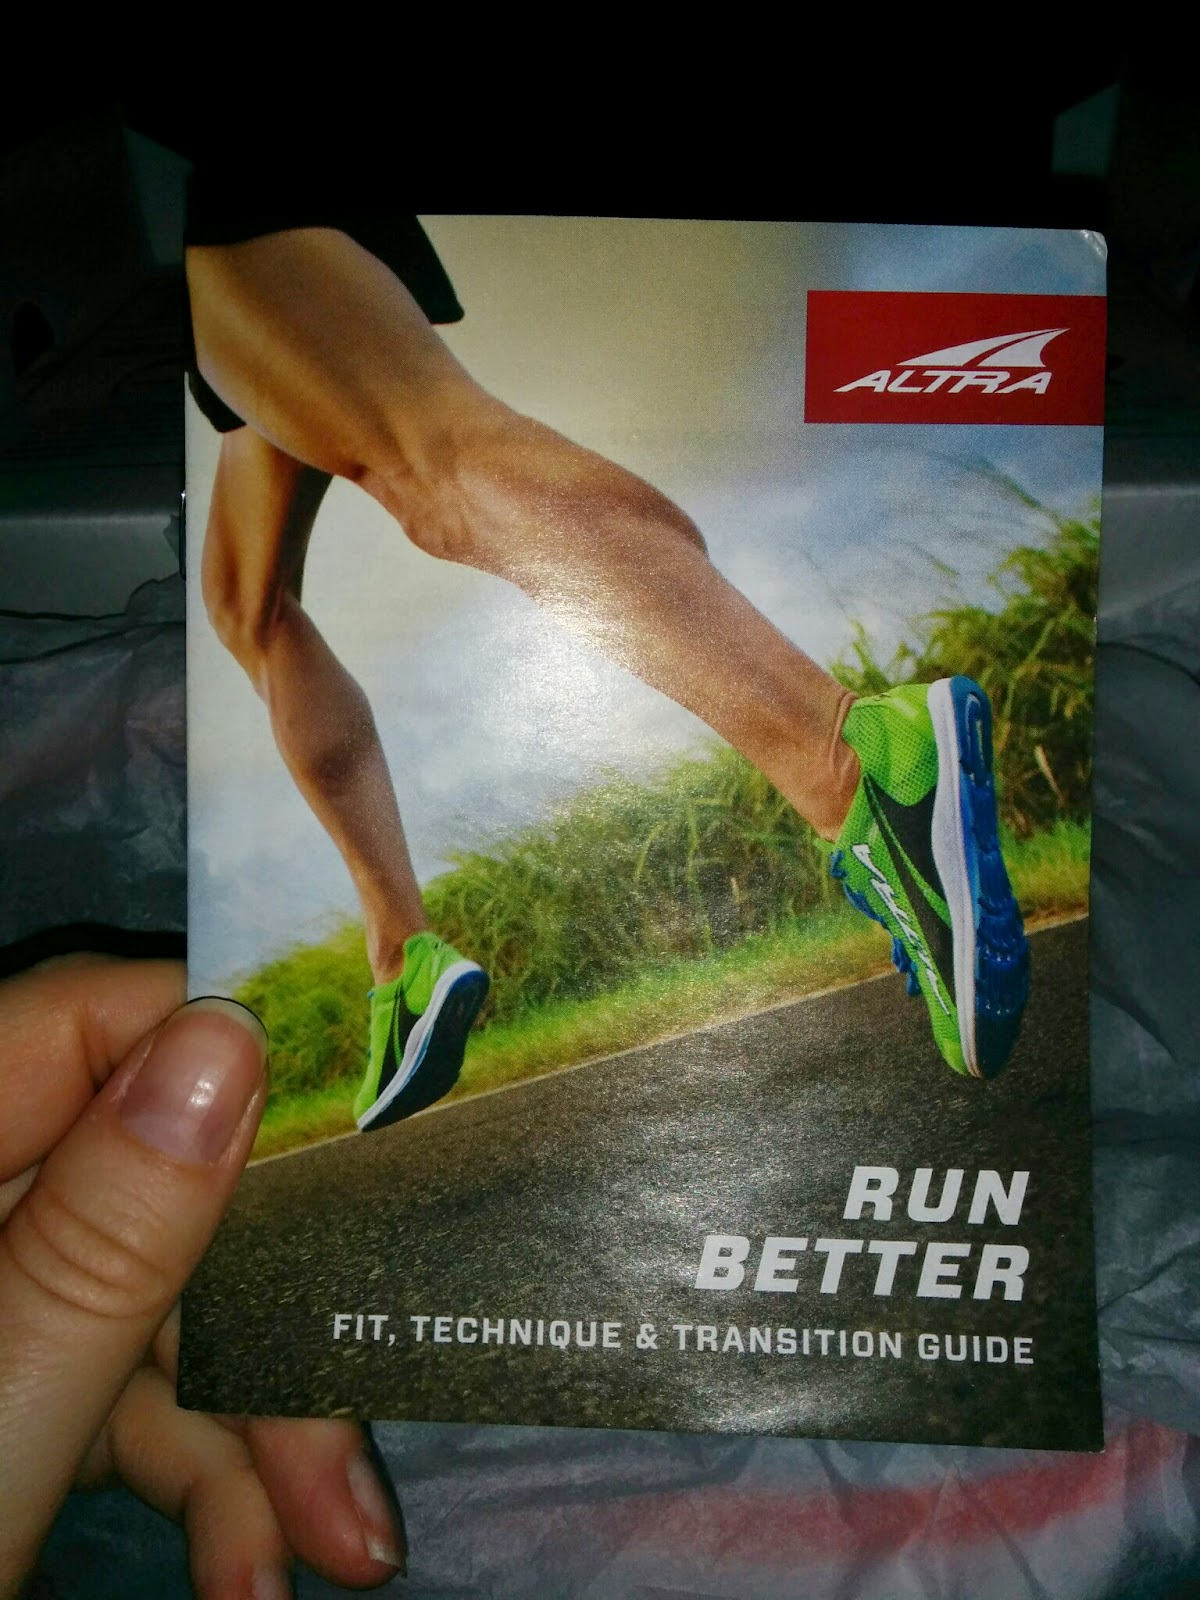 Altra Running | Fit, Technique & Transition Guide